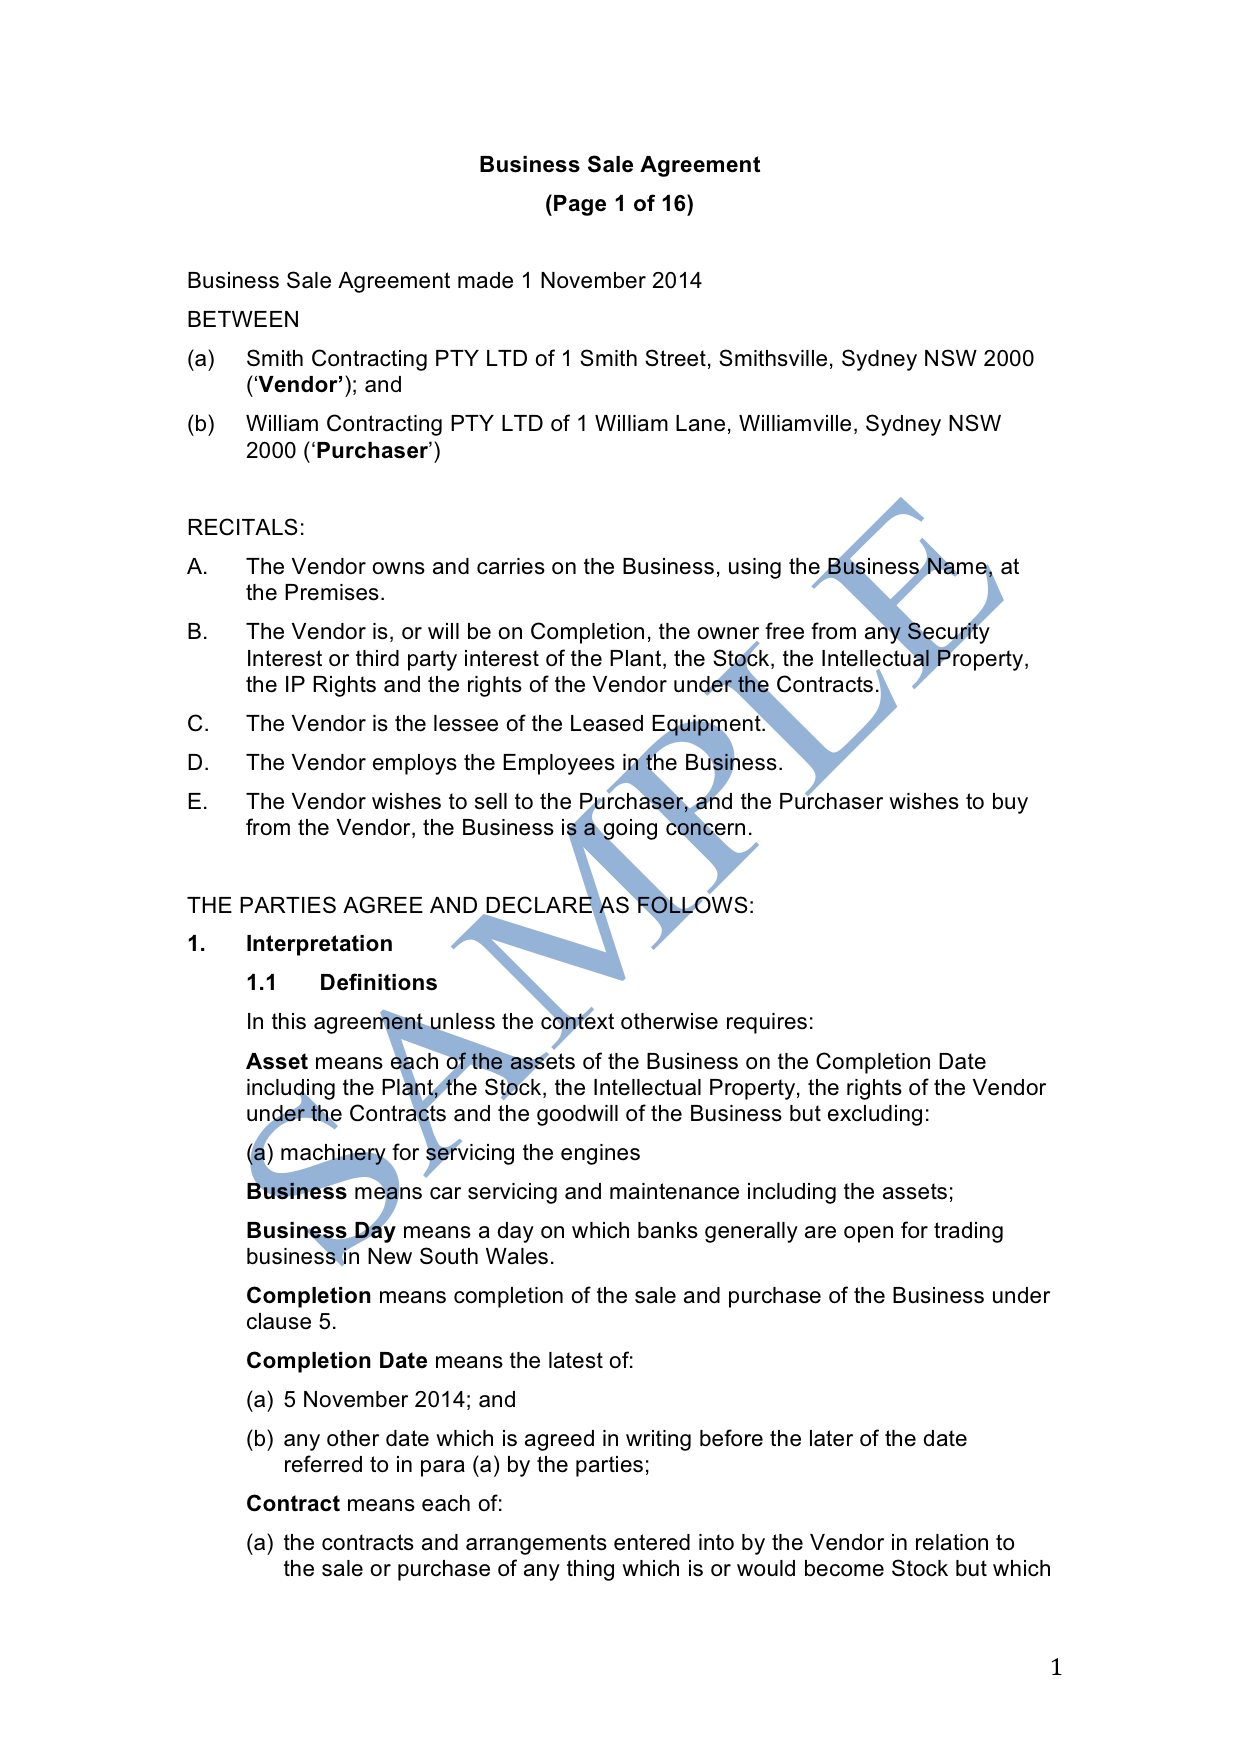 Business Sale Agreement Sample LawPath – Sample Stock Purchase Agreement